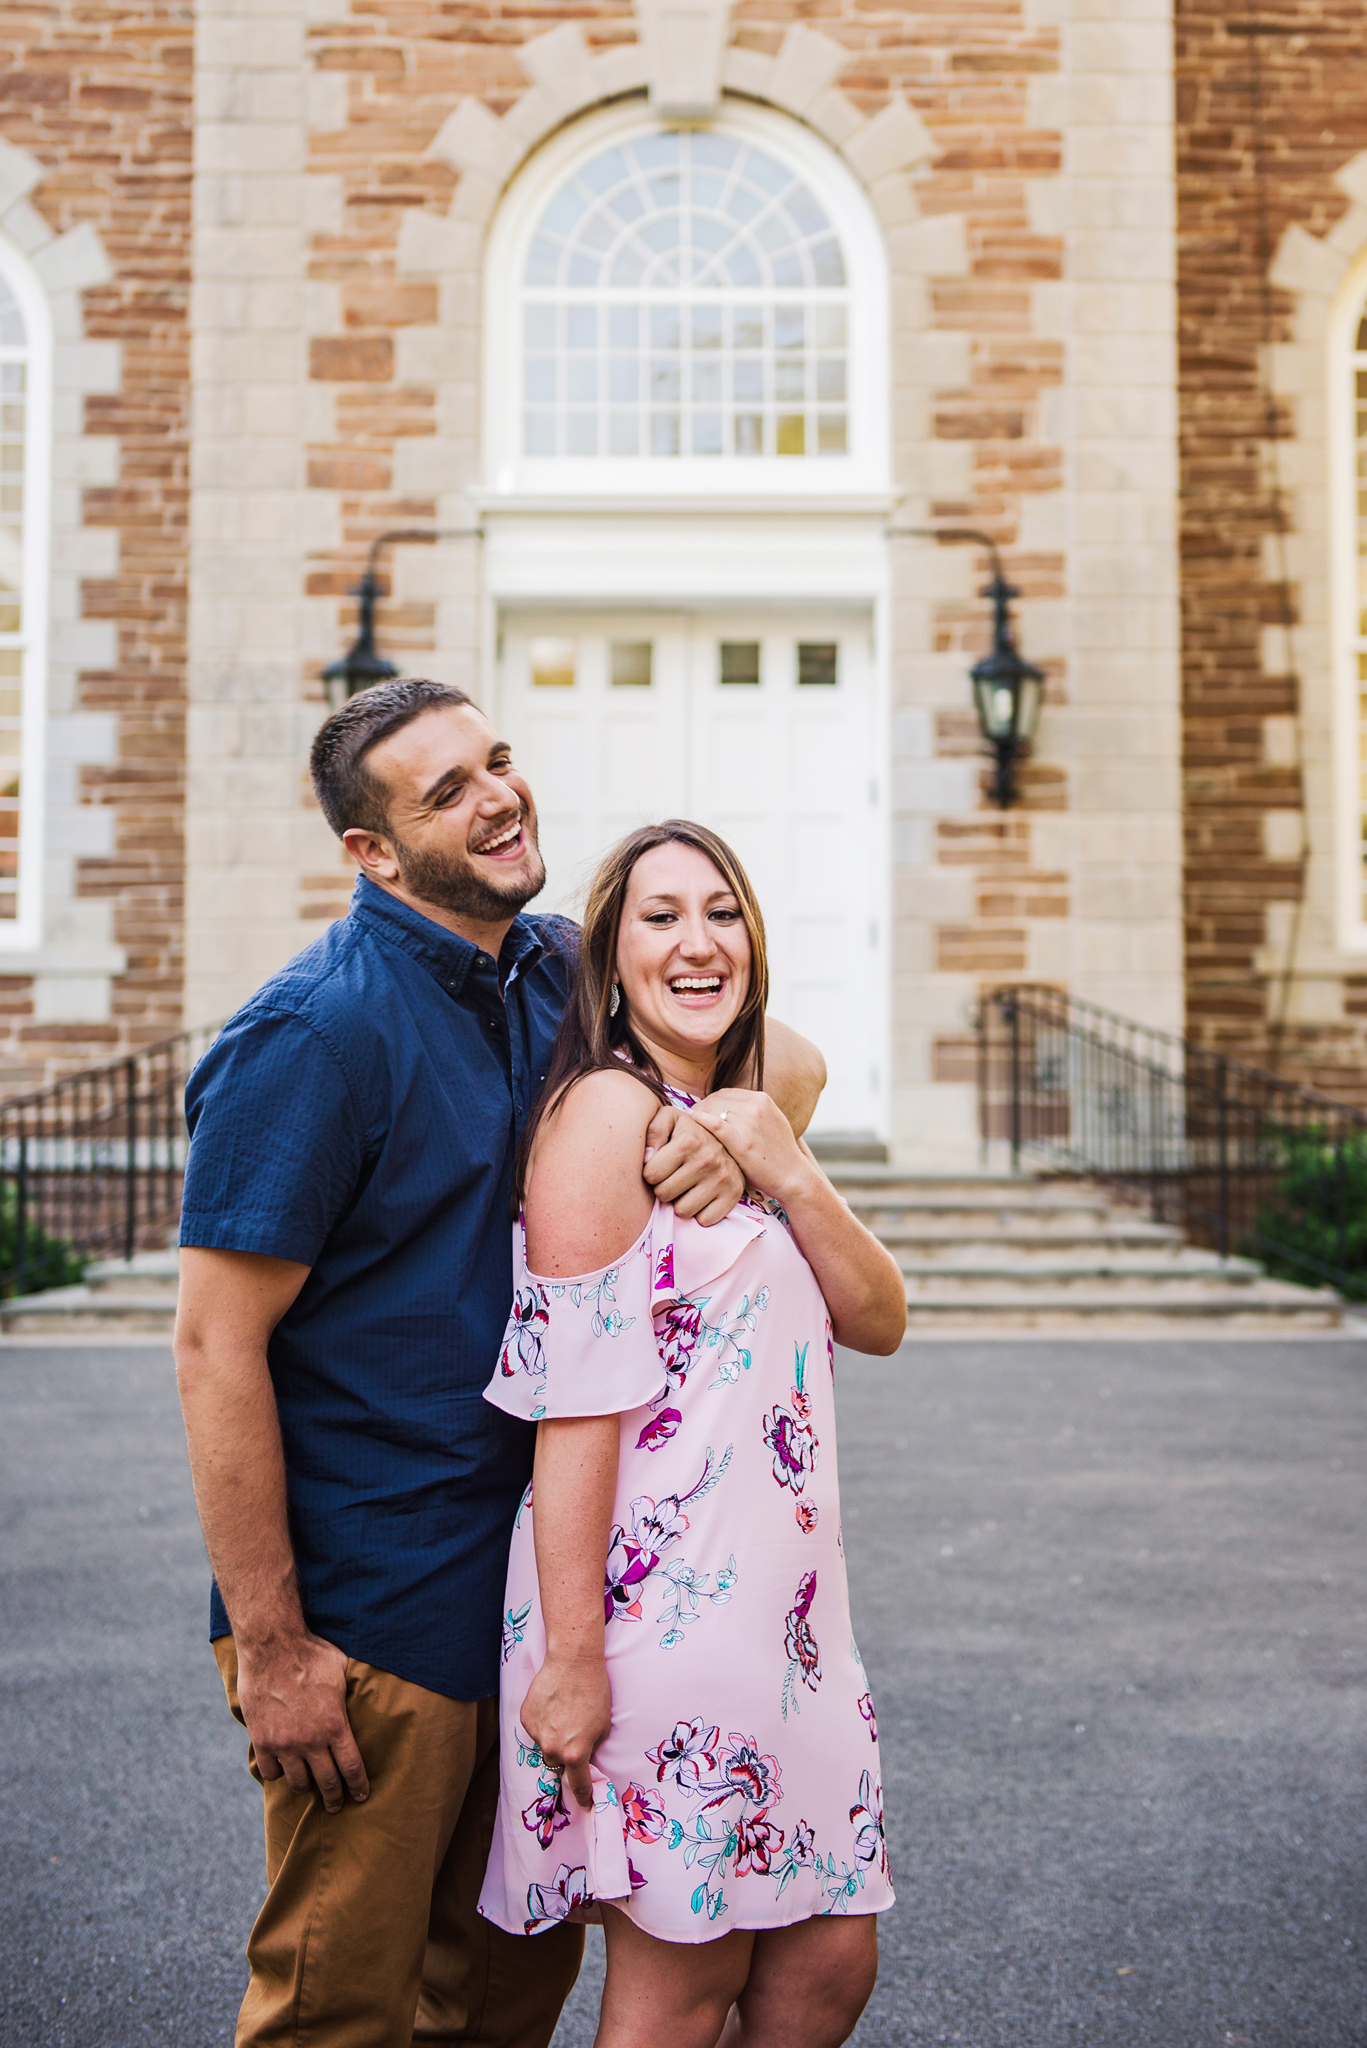 JILLSTUDIO_Hamilton_College_Root_Glen_Central_NY_Engagement_Session_Rochester_NY_Photographer_DSC_9509.jpg